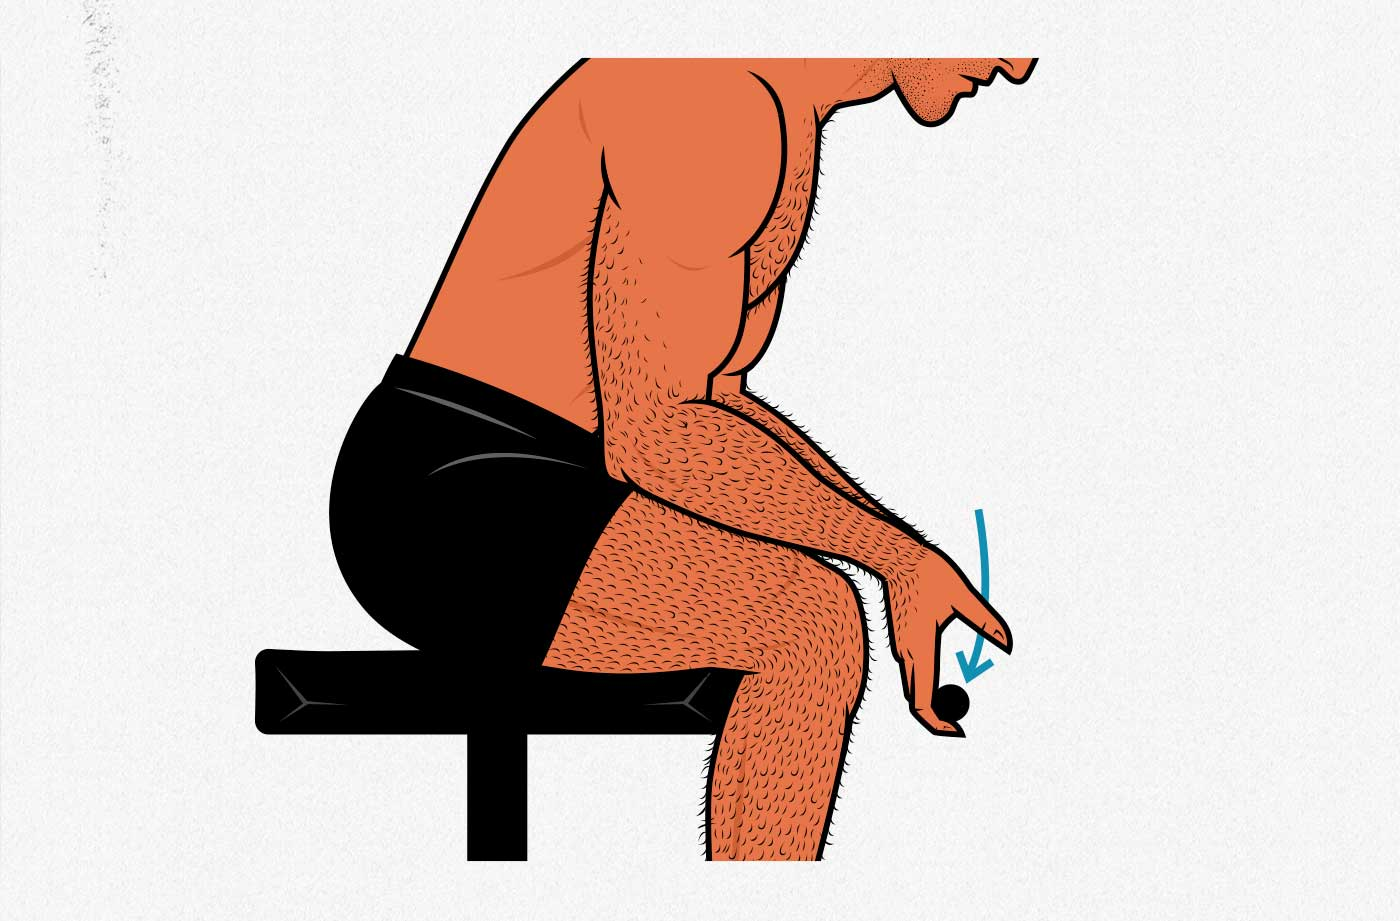 Illustration of a man doing the seated wrist curl exercise.